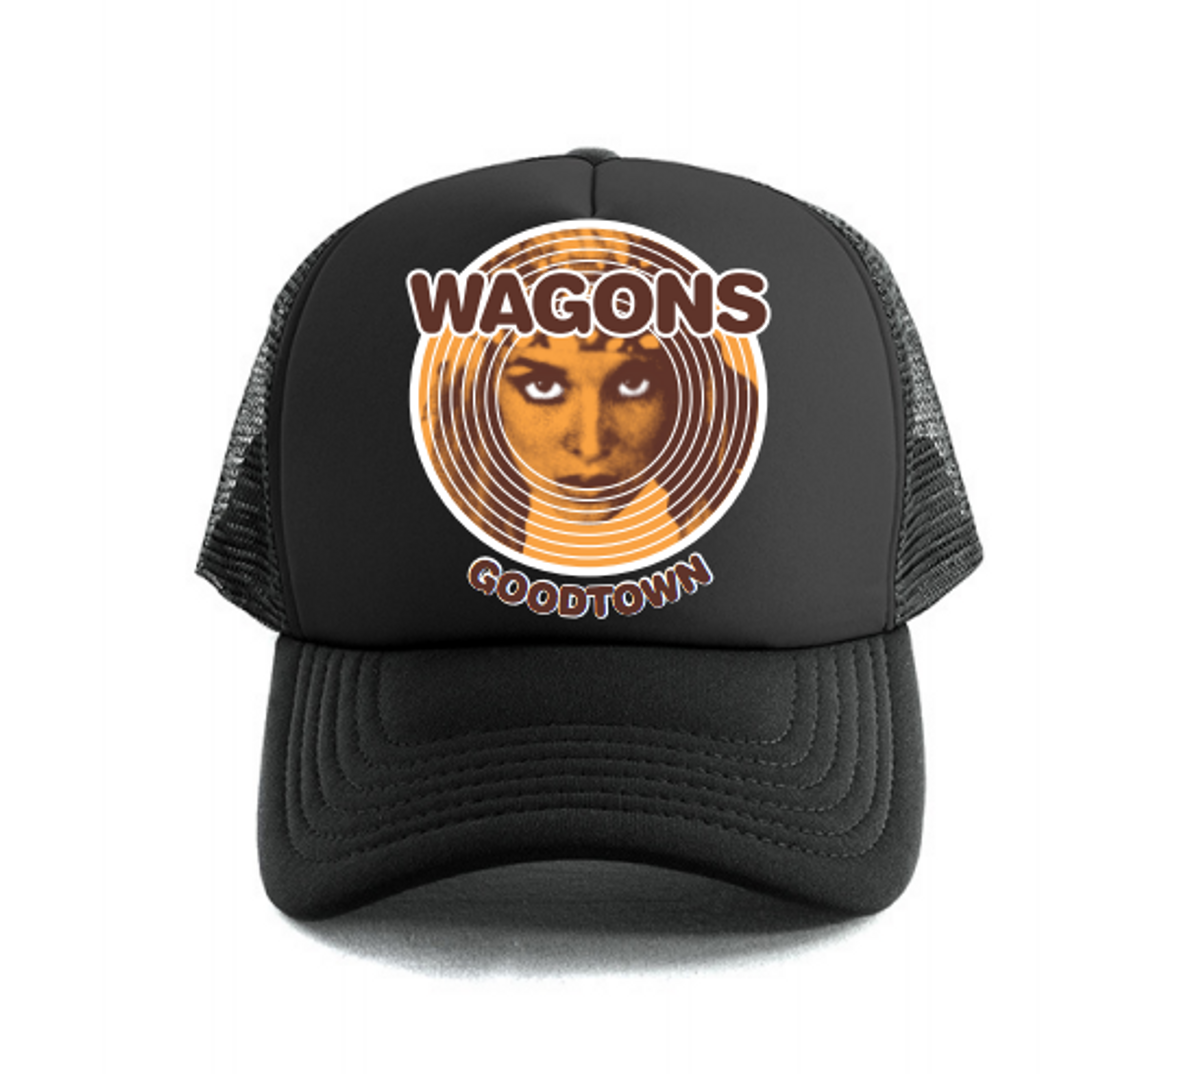 """Goodtown"" Trucker Cap - Wagons"